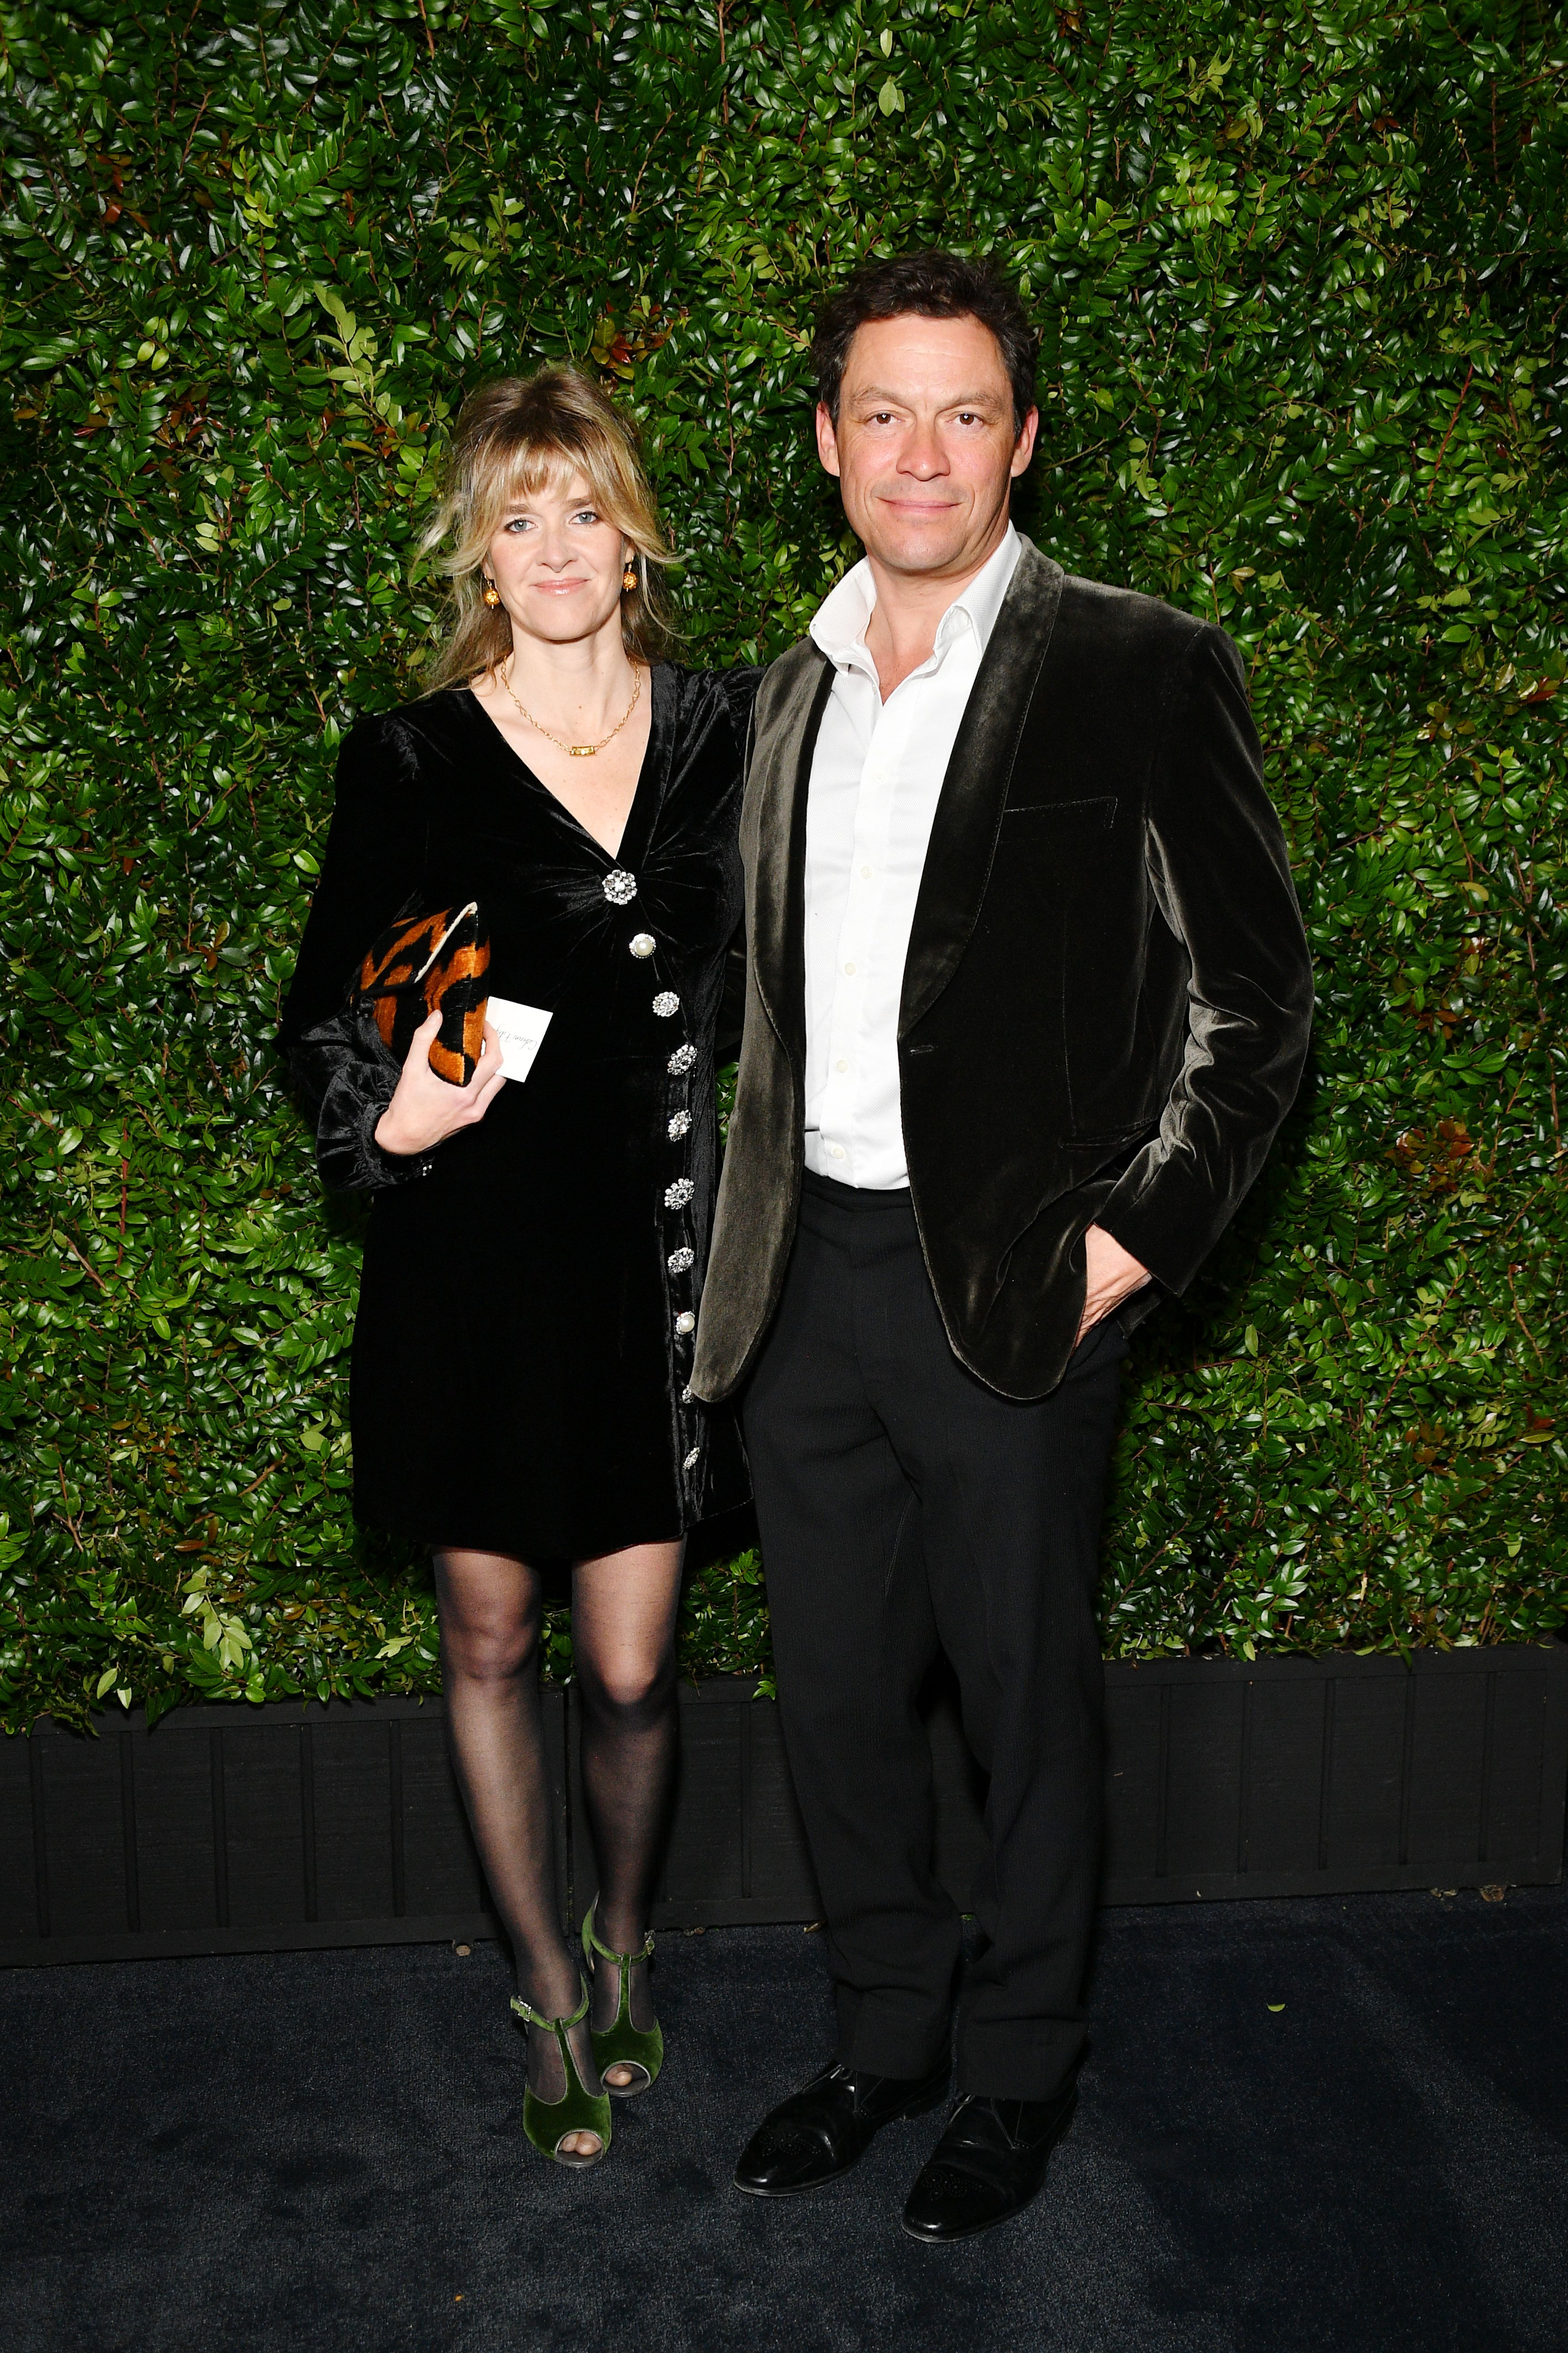 Dominic West and Catherine Fitzgerald at Chanel And Charles Finch Pre-Oscar Awards Dinner At The Polo Lounge in Beverly Hills on February 23, 2019 | Photo: Getty Images